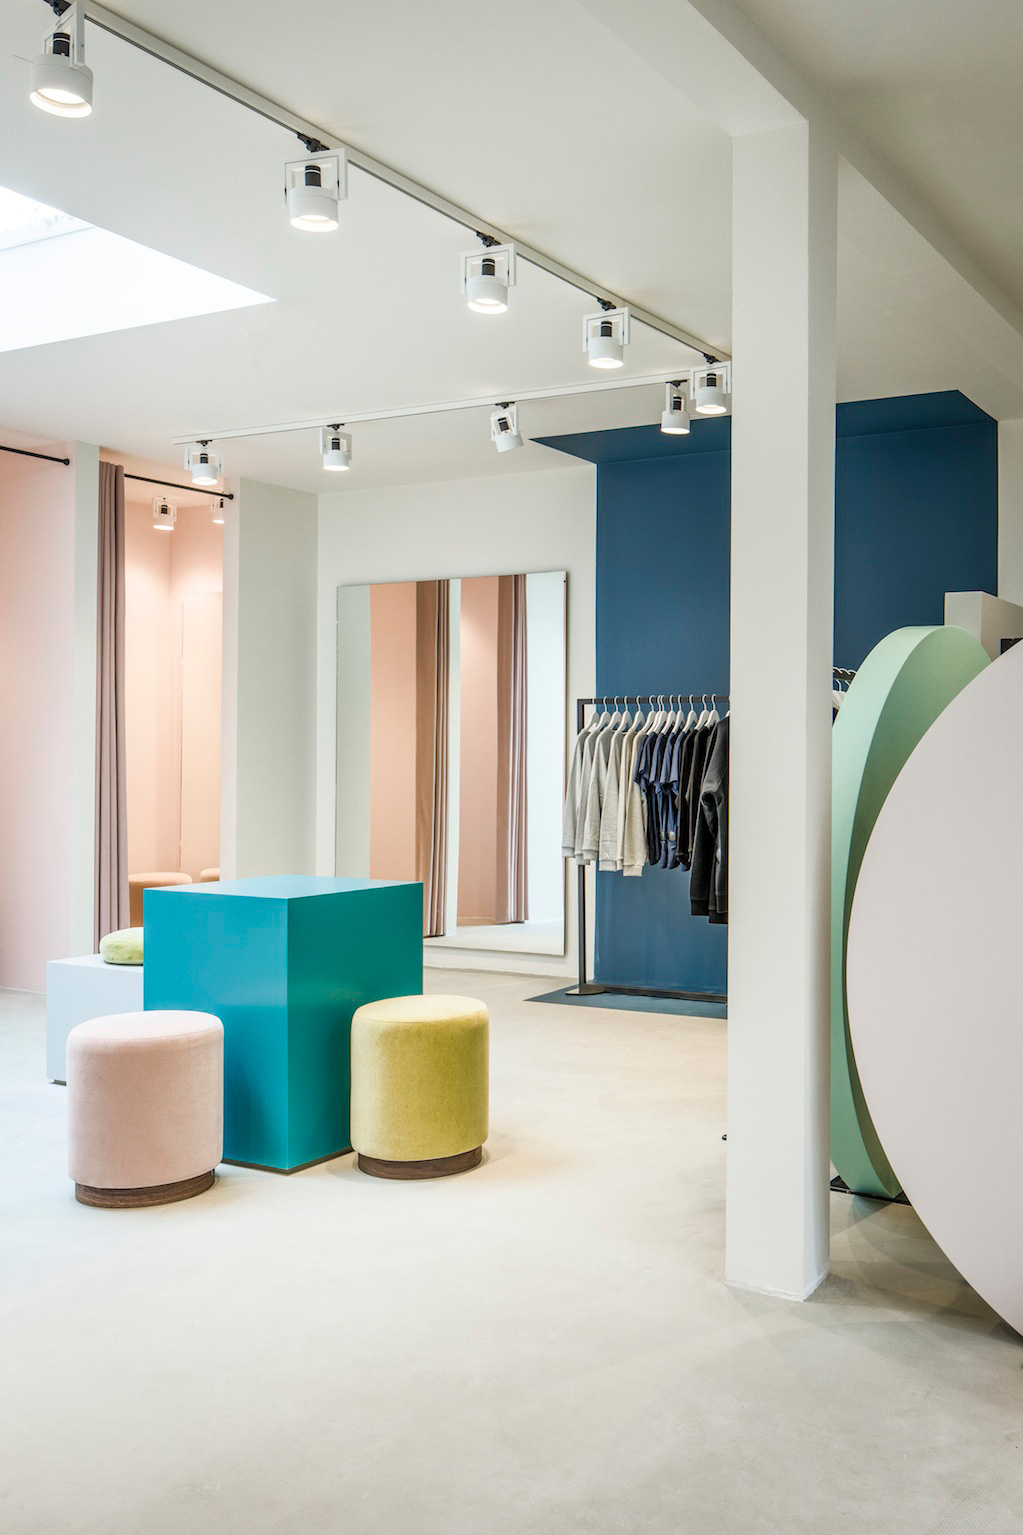 The Pelican Studio in Amsterdam by Framework | Yellowtrace